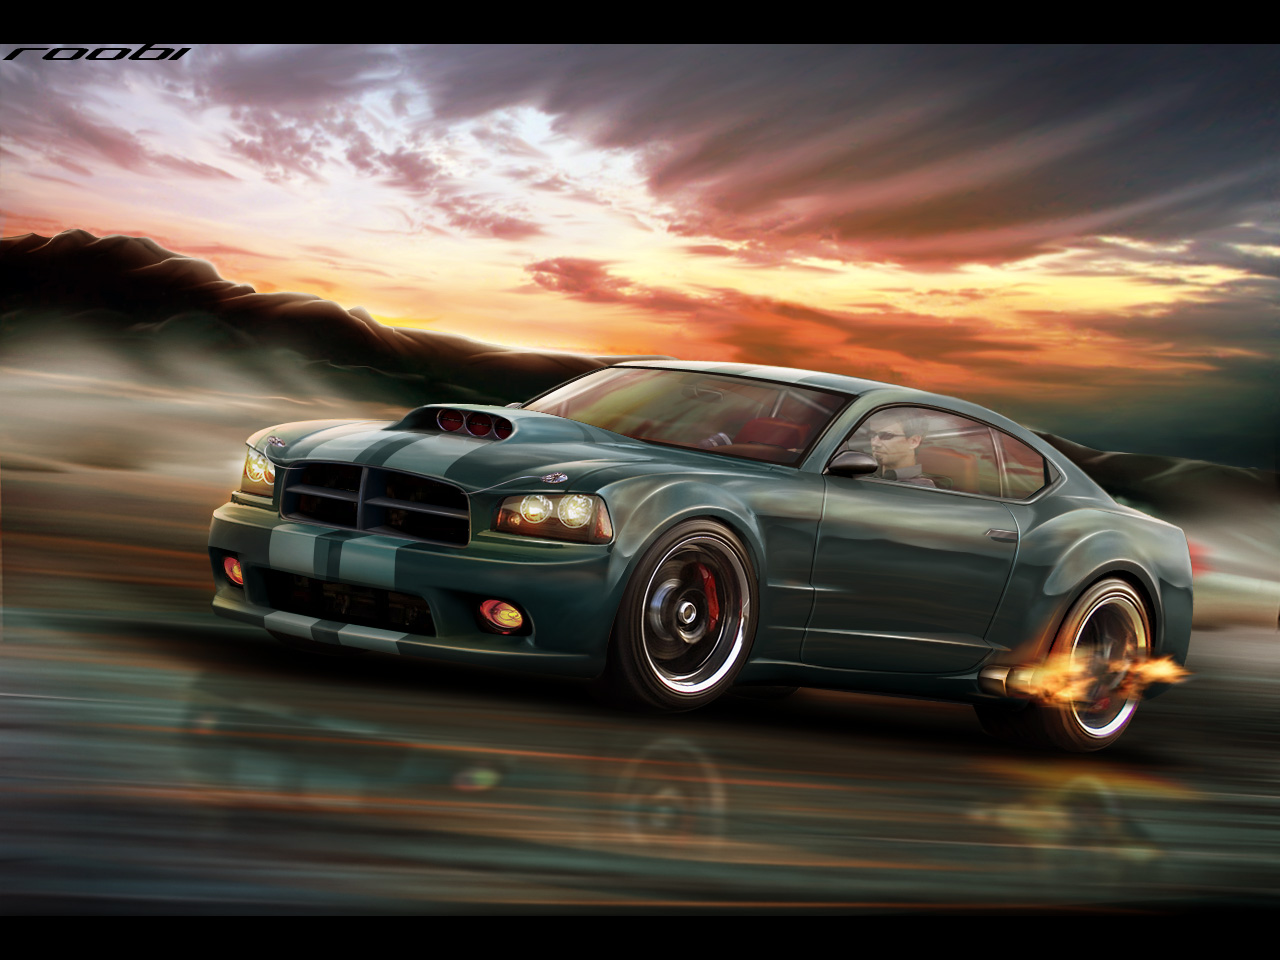 Dodge Charger 2011 Cars Review And Wallpaper Gallery